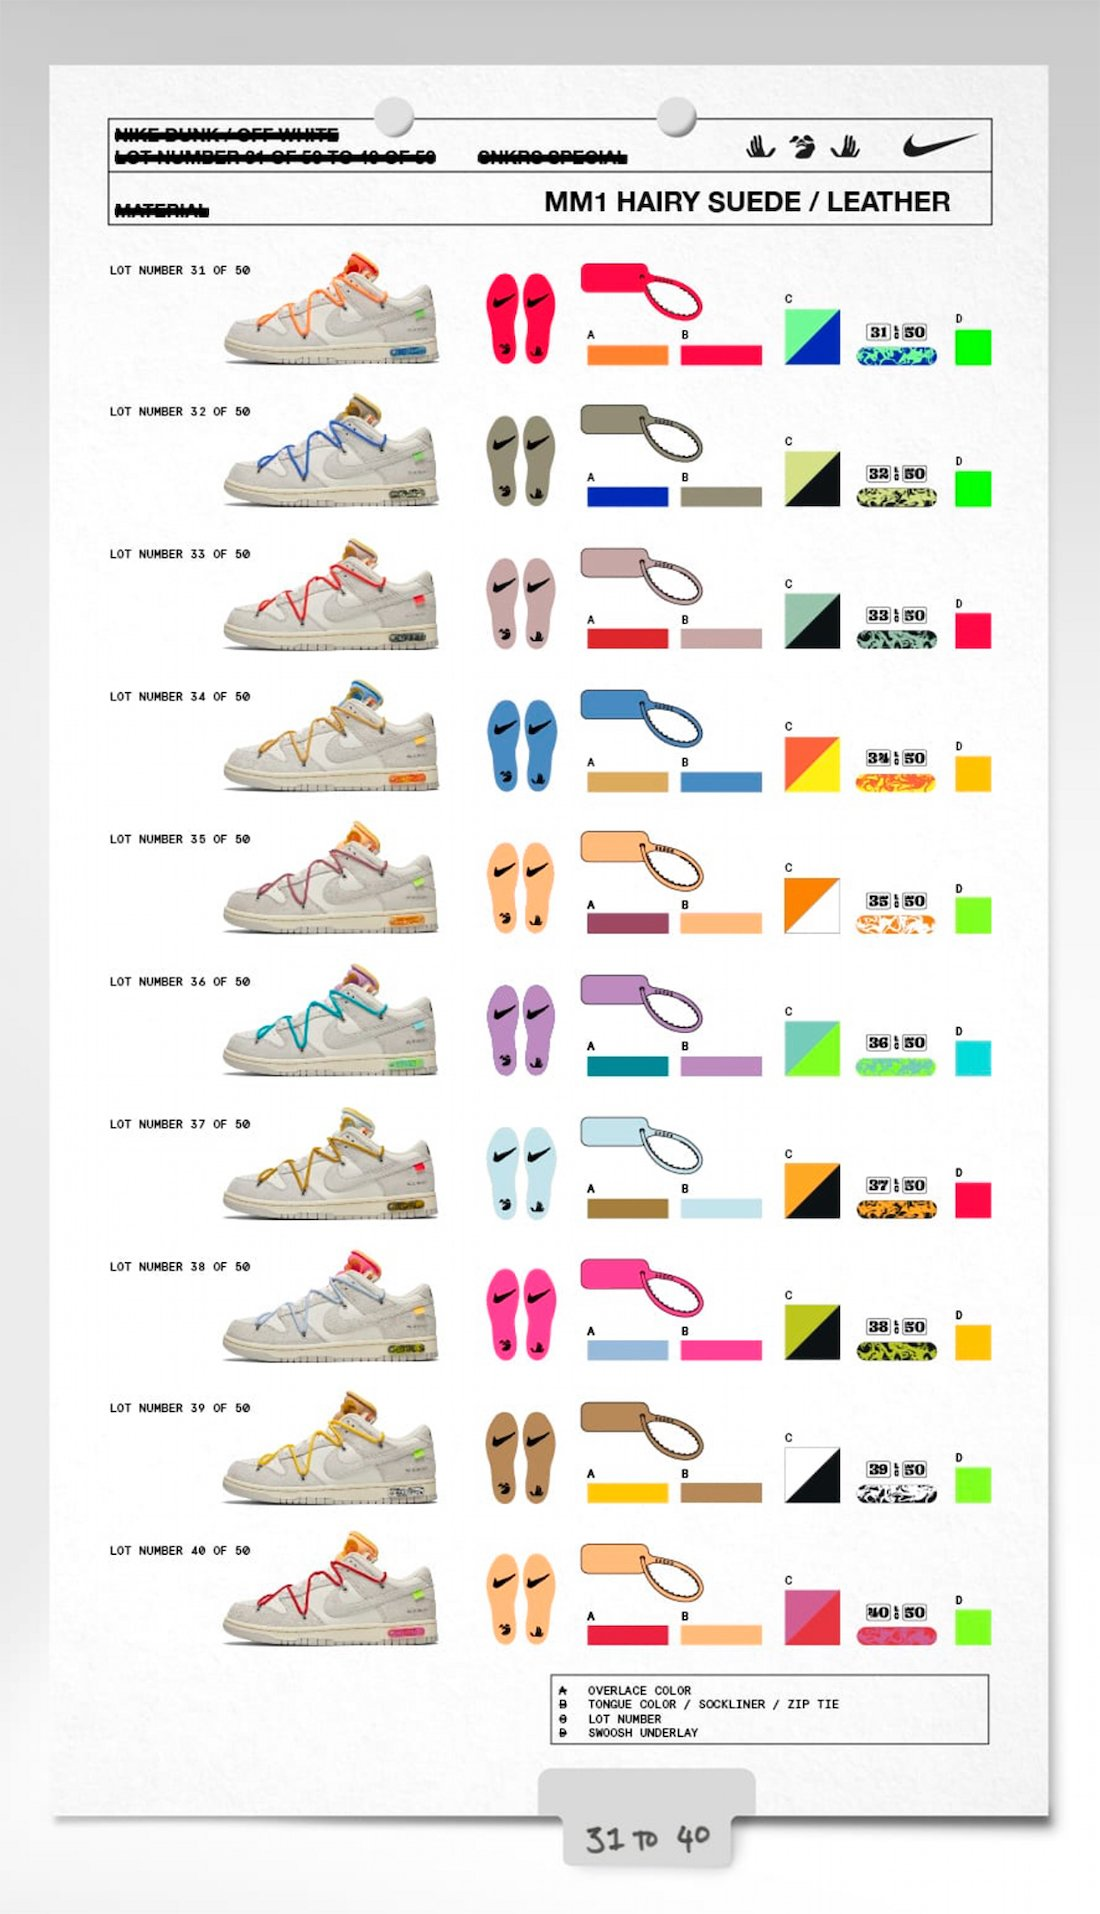 Off-White x Nike Dunk Low 31-40 Collection